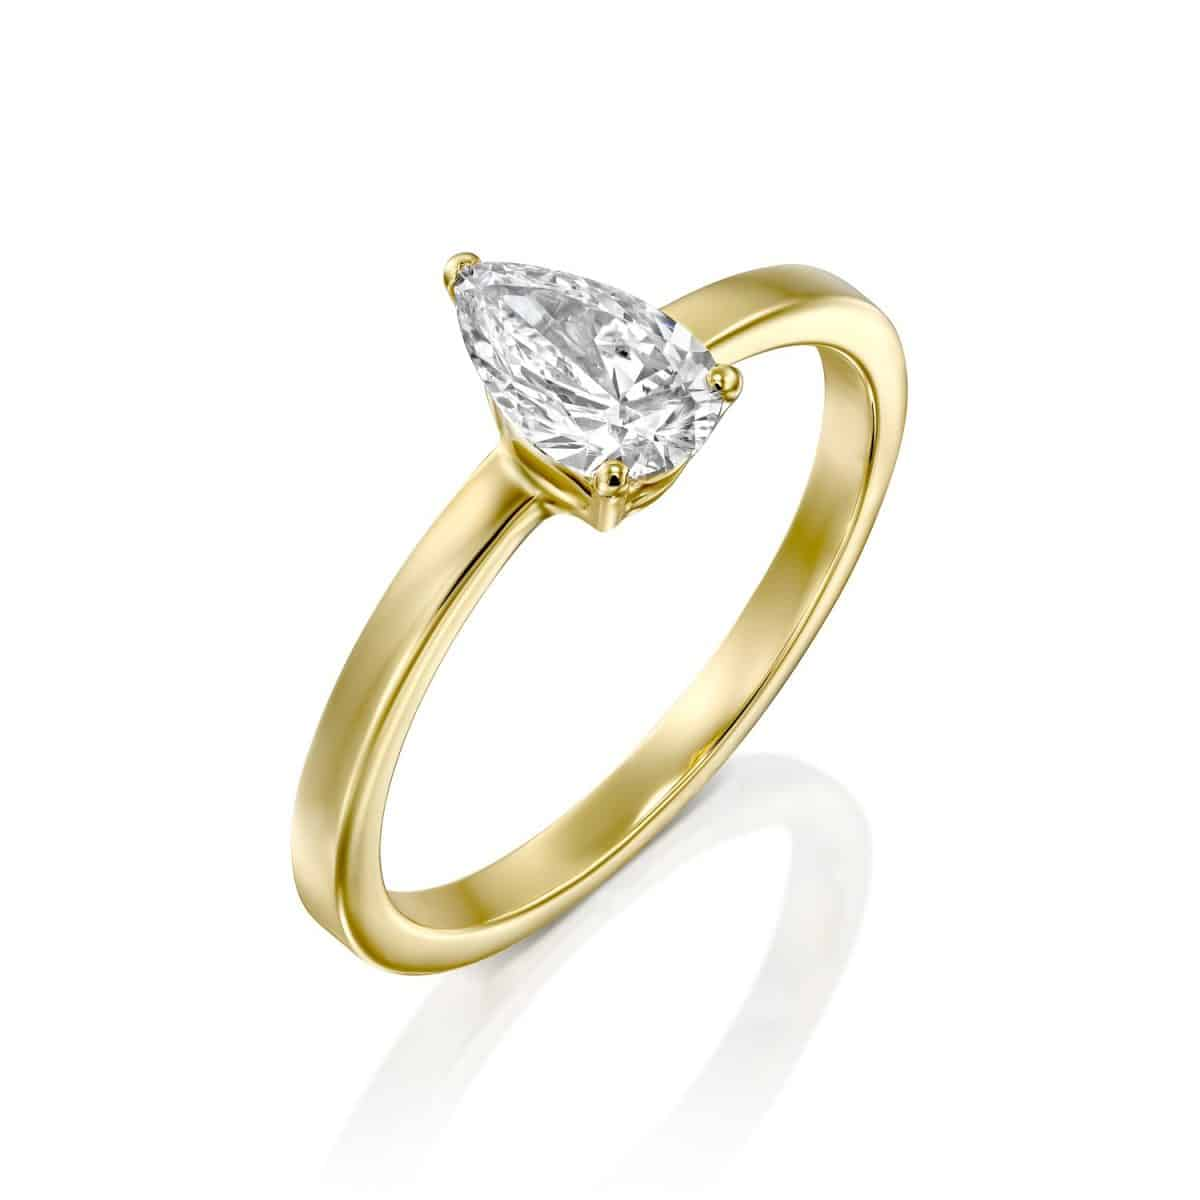 Brittney - Yellow Gold Lab Grown Diamond Engagement Ring 0.60ct. - main